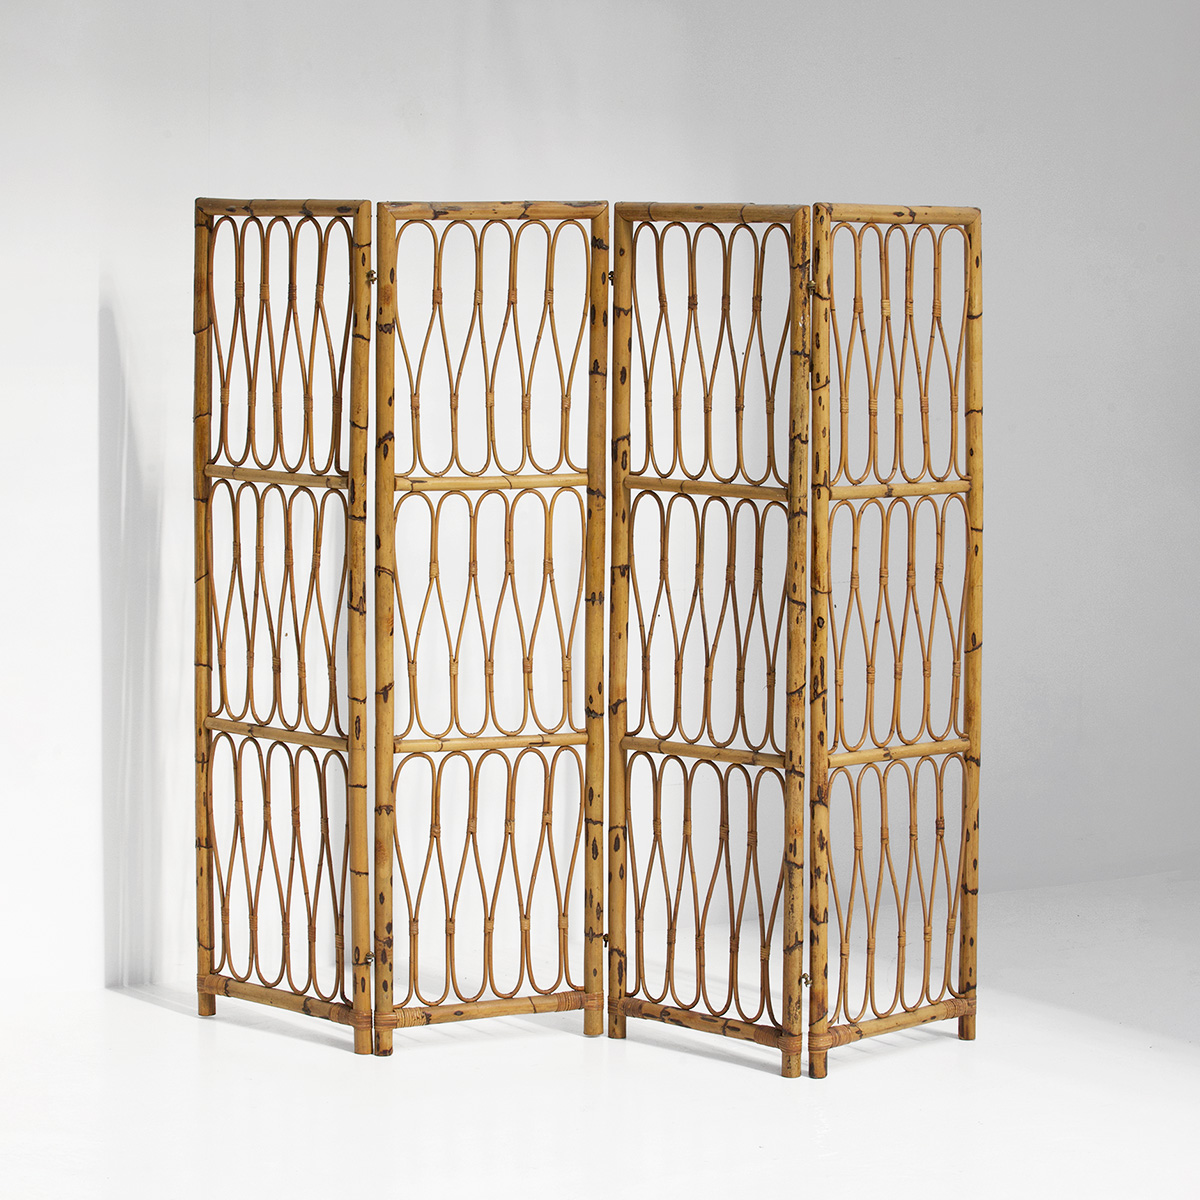 1950s Decorative Rattan Folding Screen